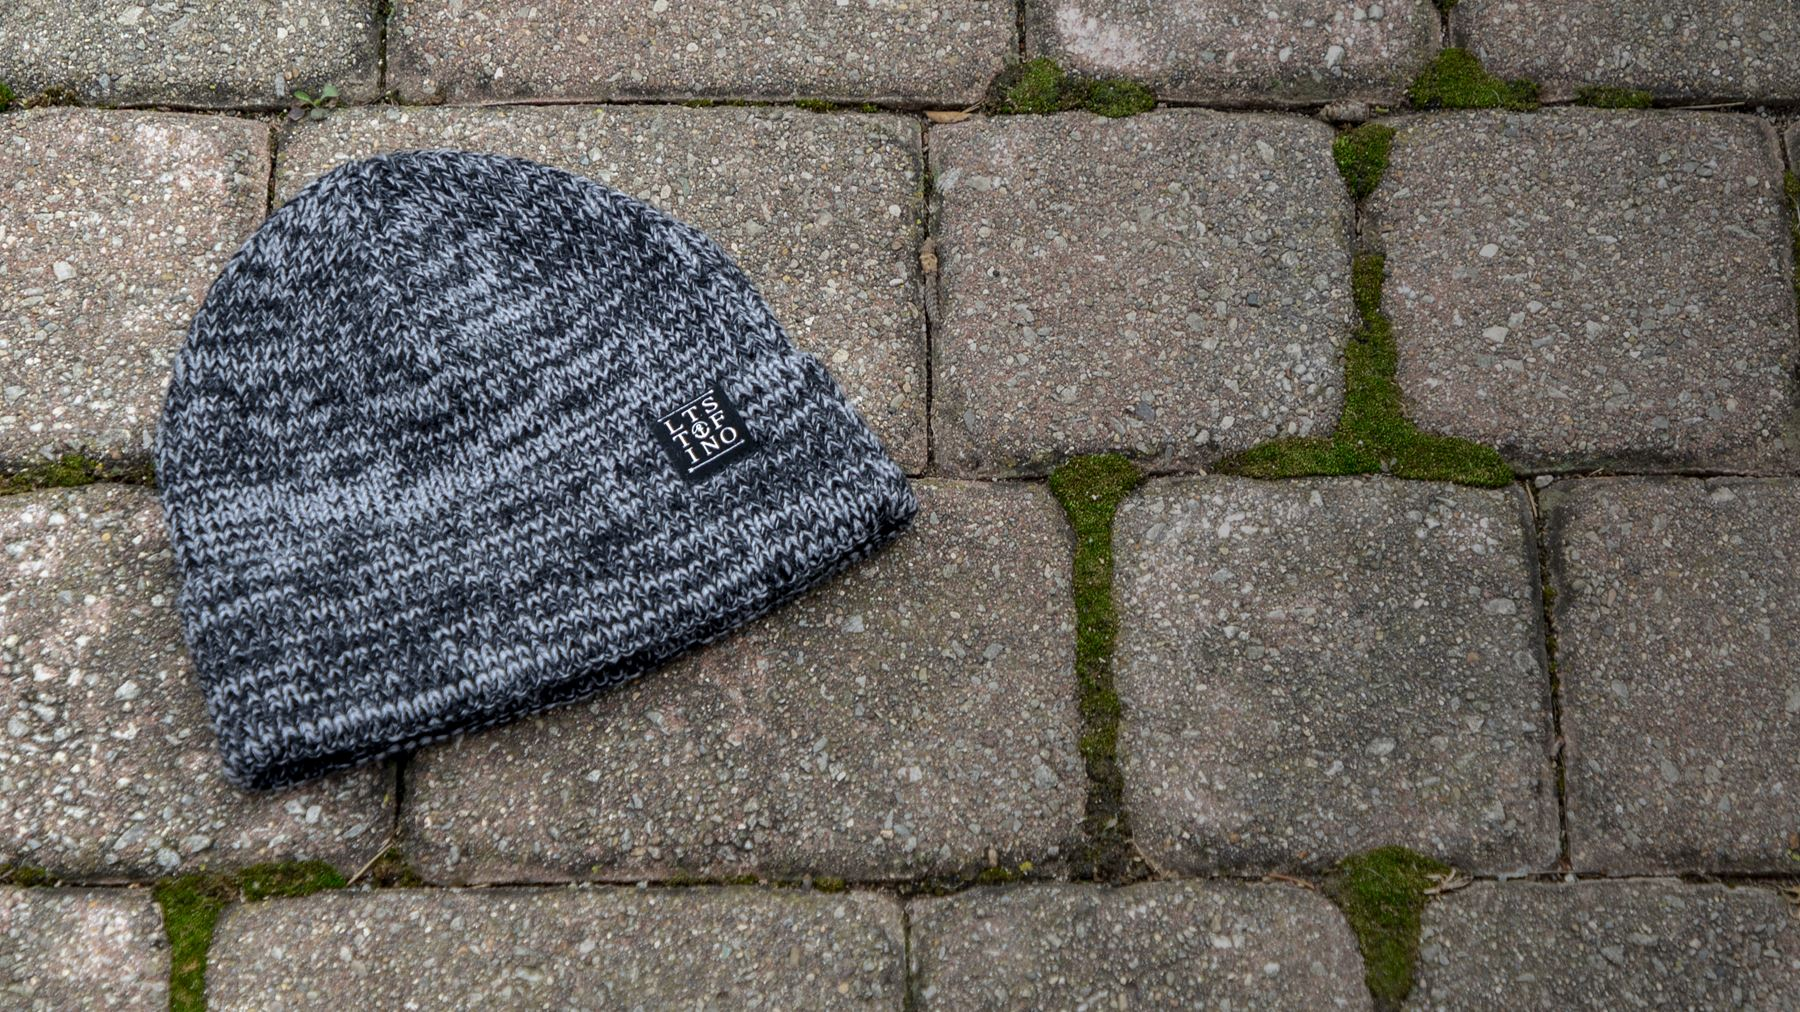 Woodberry knit hat laying on stone path